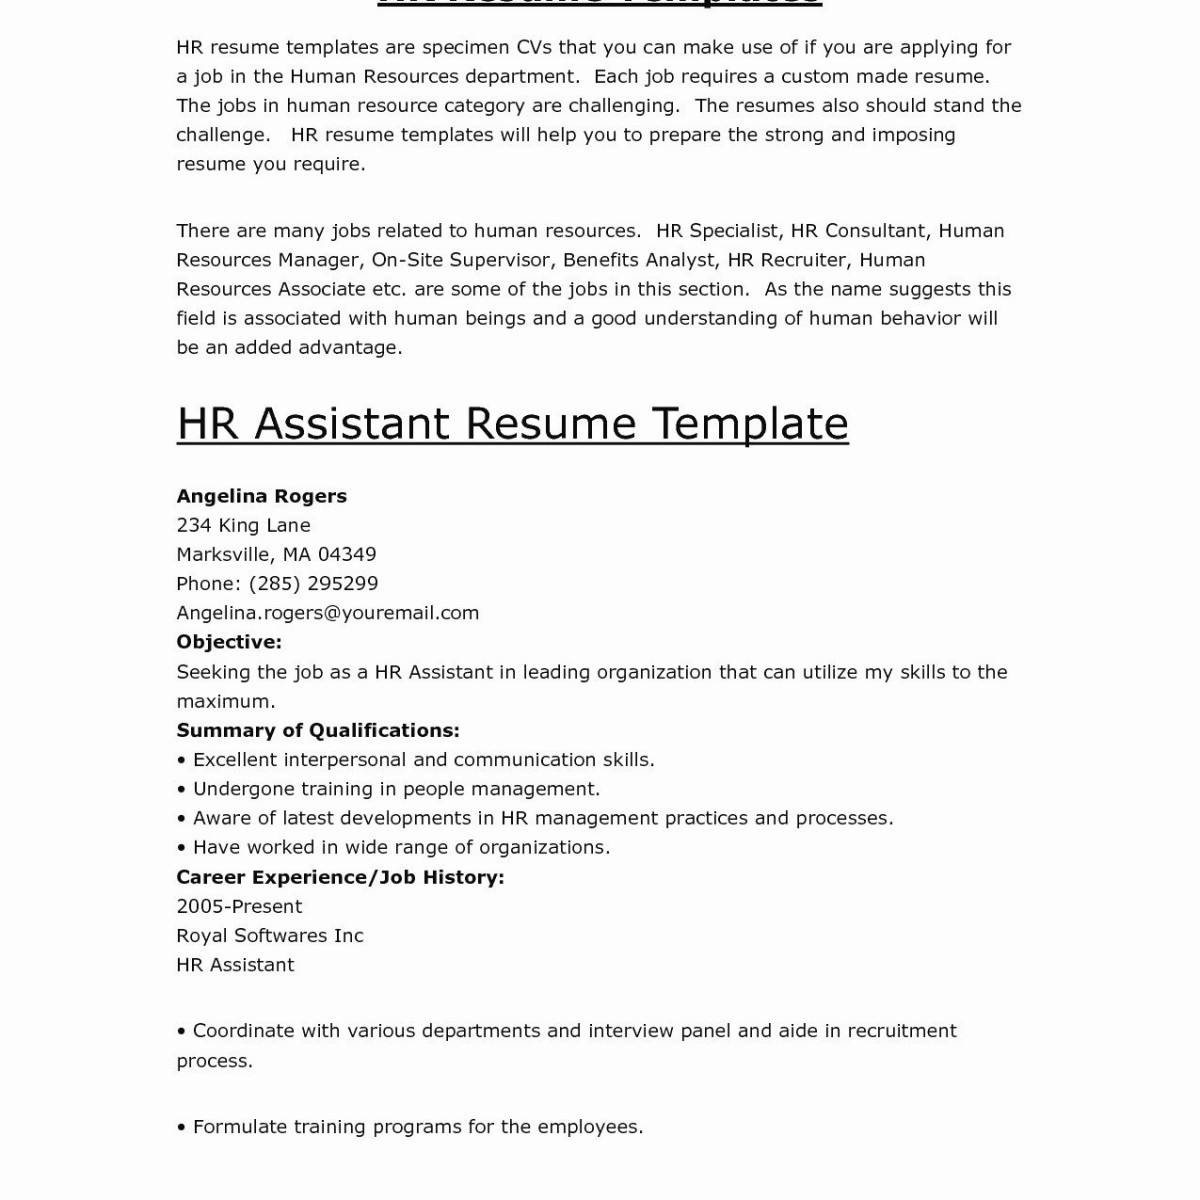 babysitting resume examples example-19 Beautiful Nanny Job Description for Resume from Nanny Job Description For Resume source maths 8-f